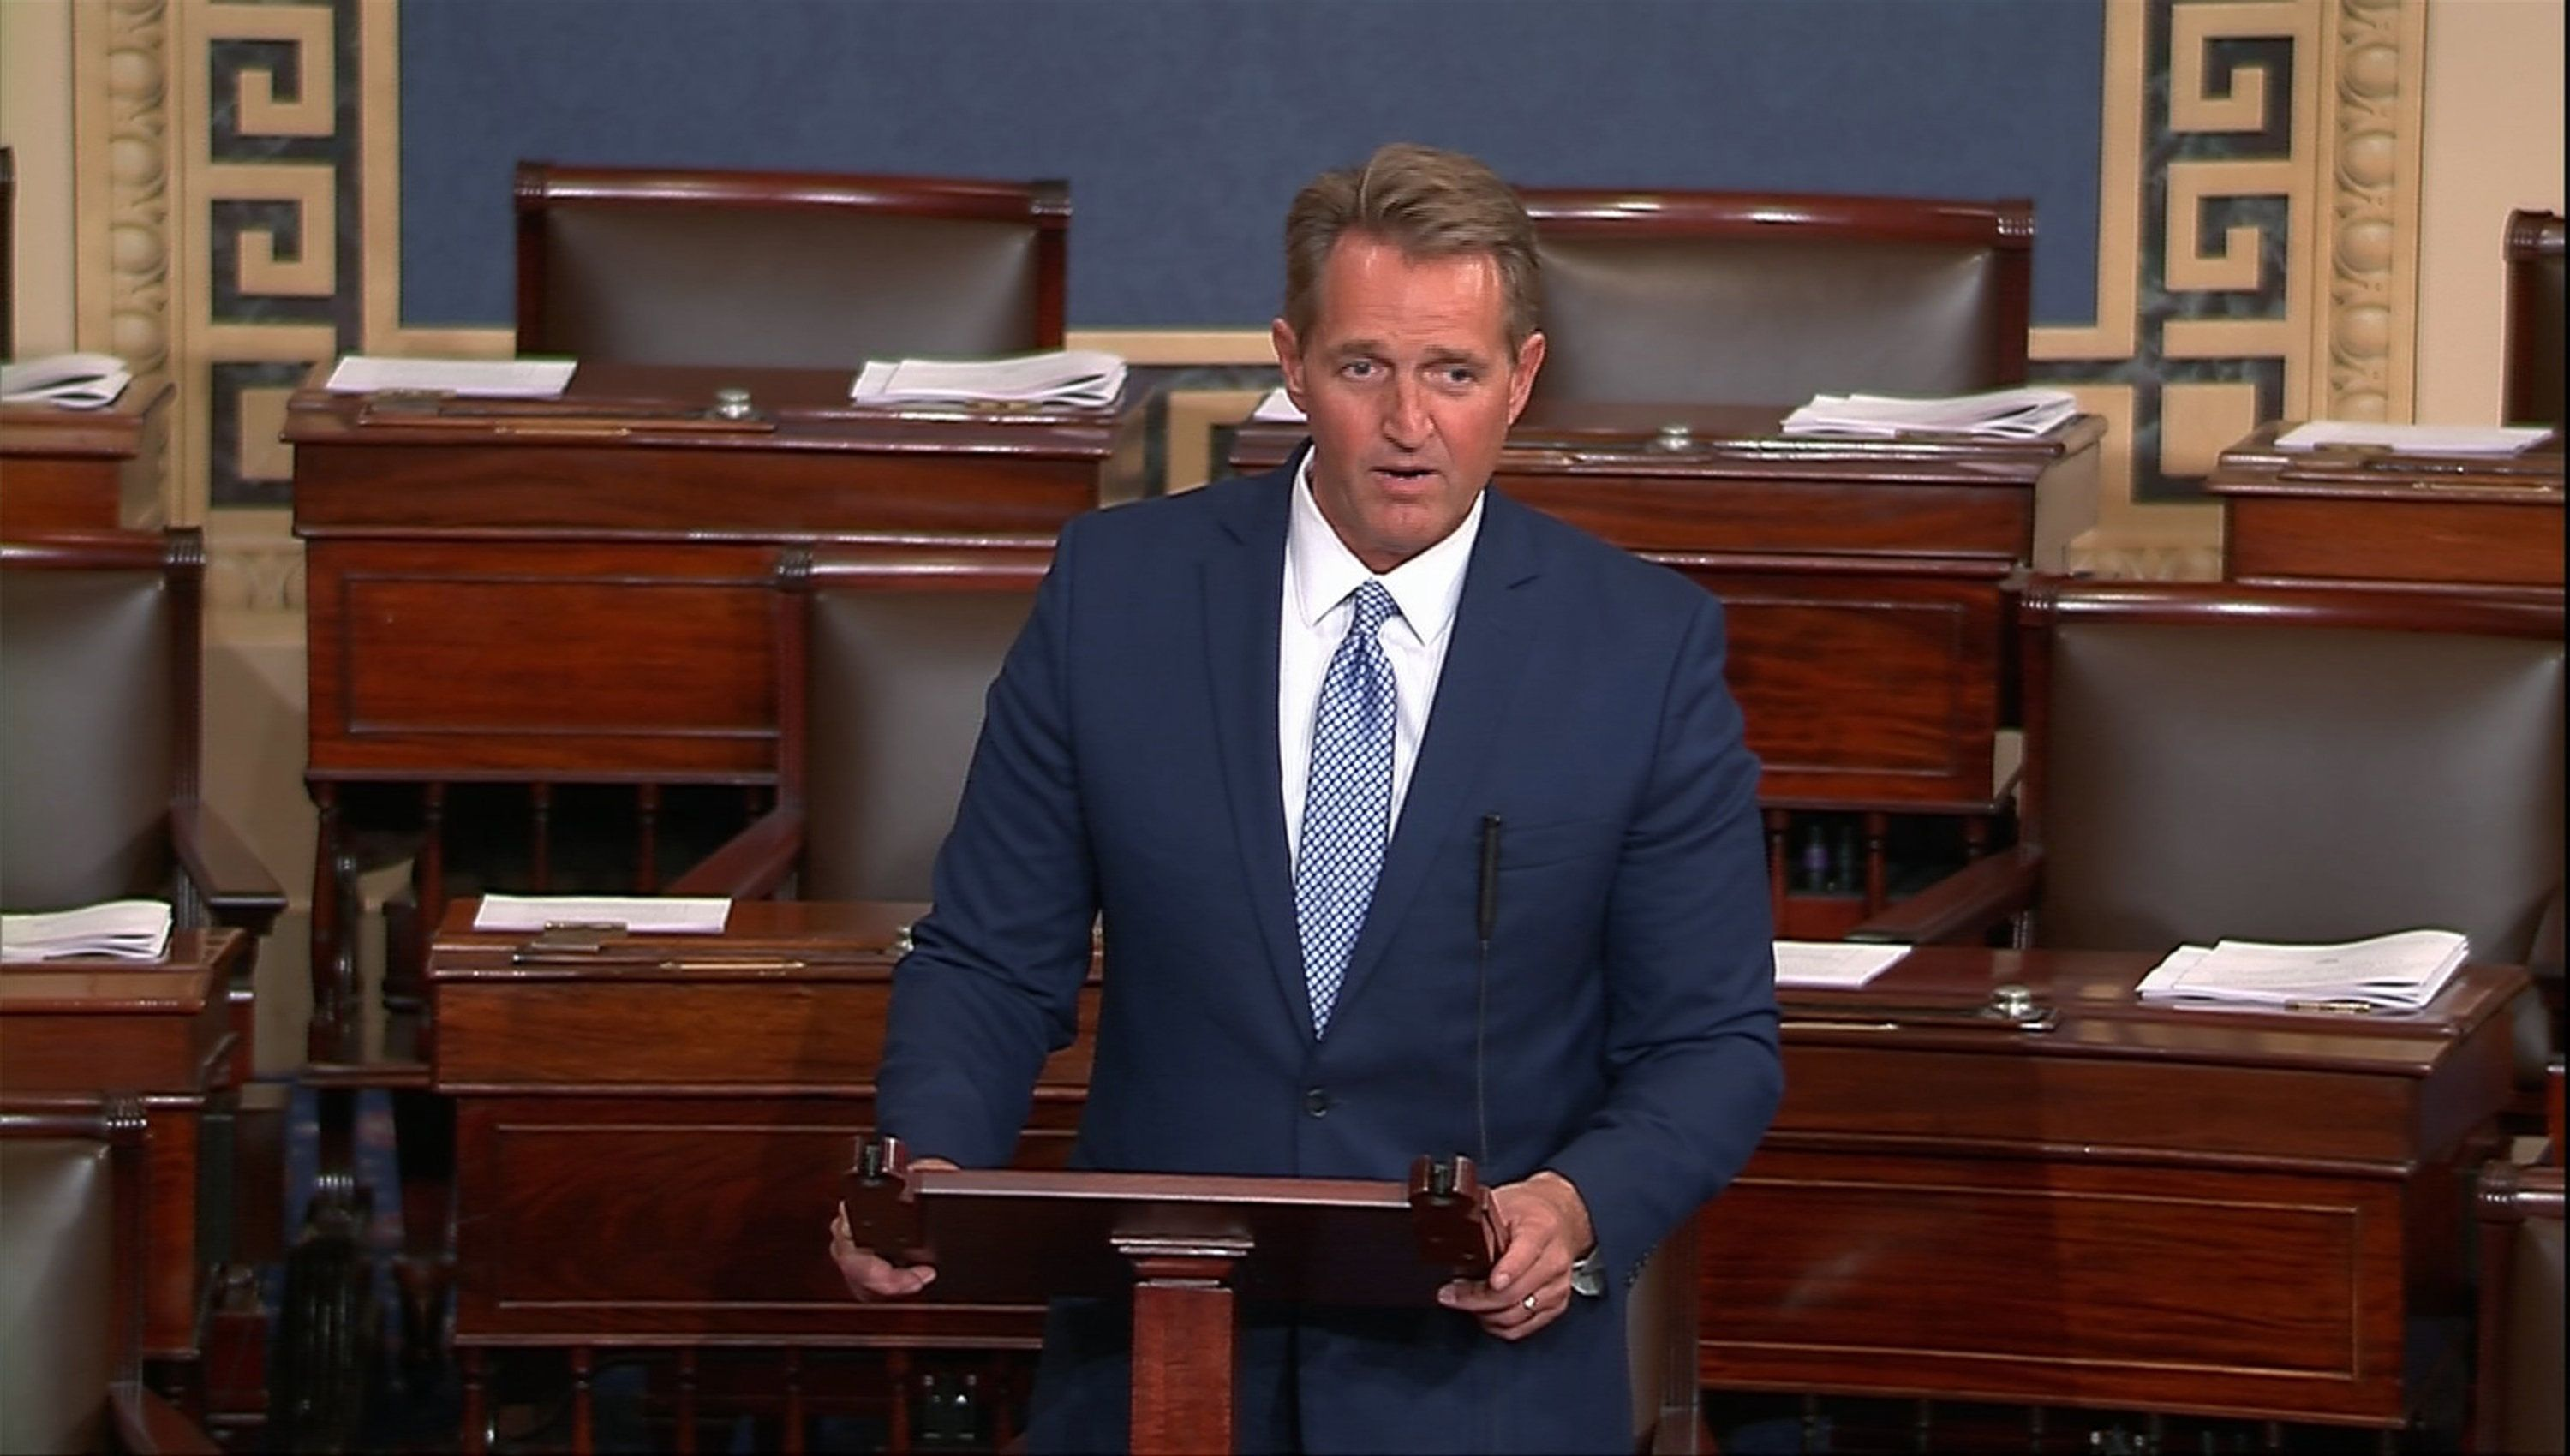 U.S. Senator Jeff Flake (R-AZ) announces he will not seek re-election as he speaks on the Senate floor in this still image taken from video on Capitol Hill in Washington, U.S., October 24, 2017. REUTERS/Senate TV via Reuters/Handout